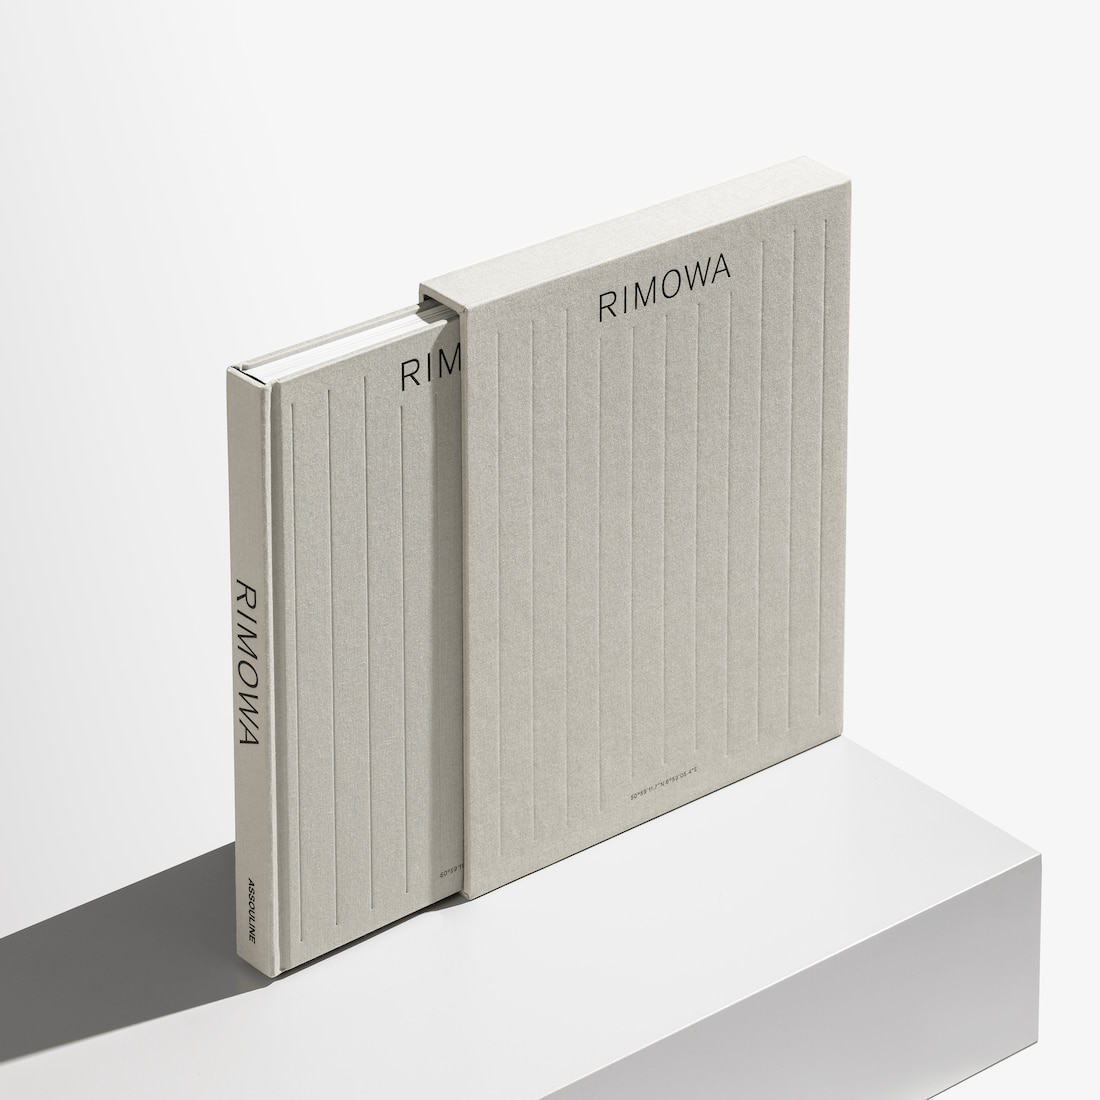 RIMOWA Book by Assouline